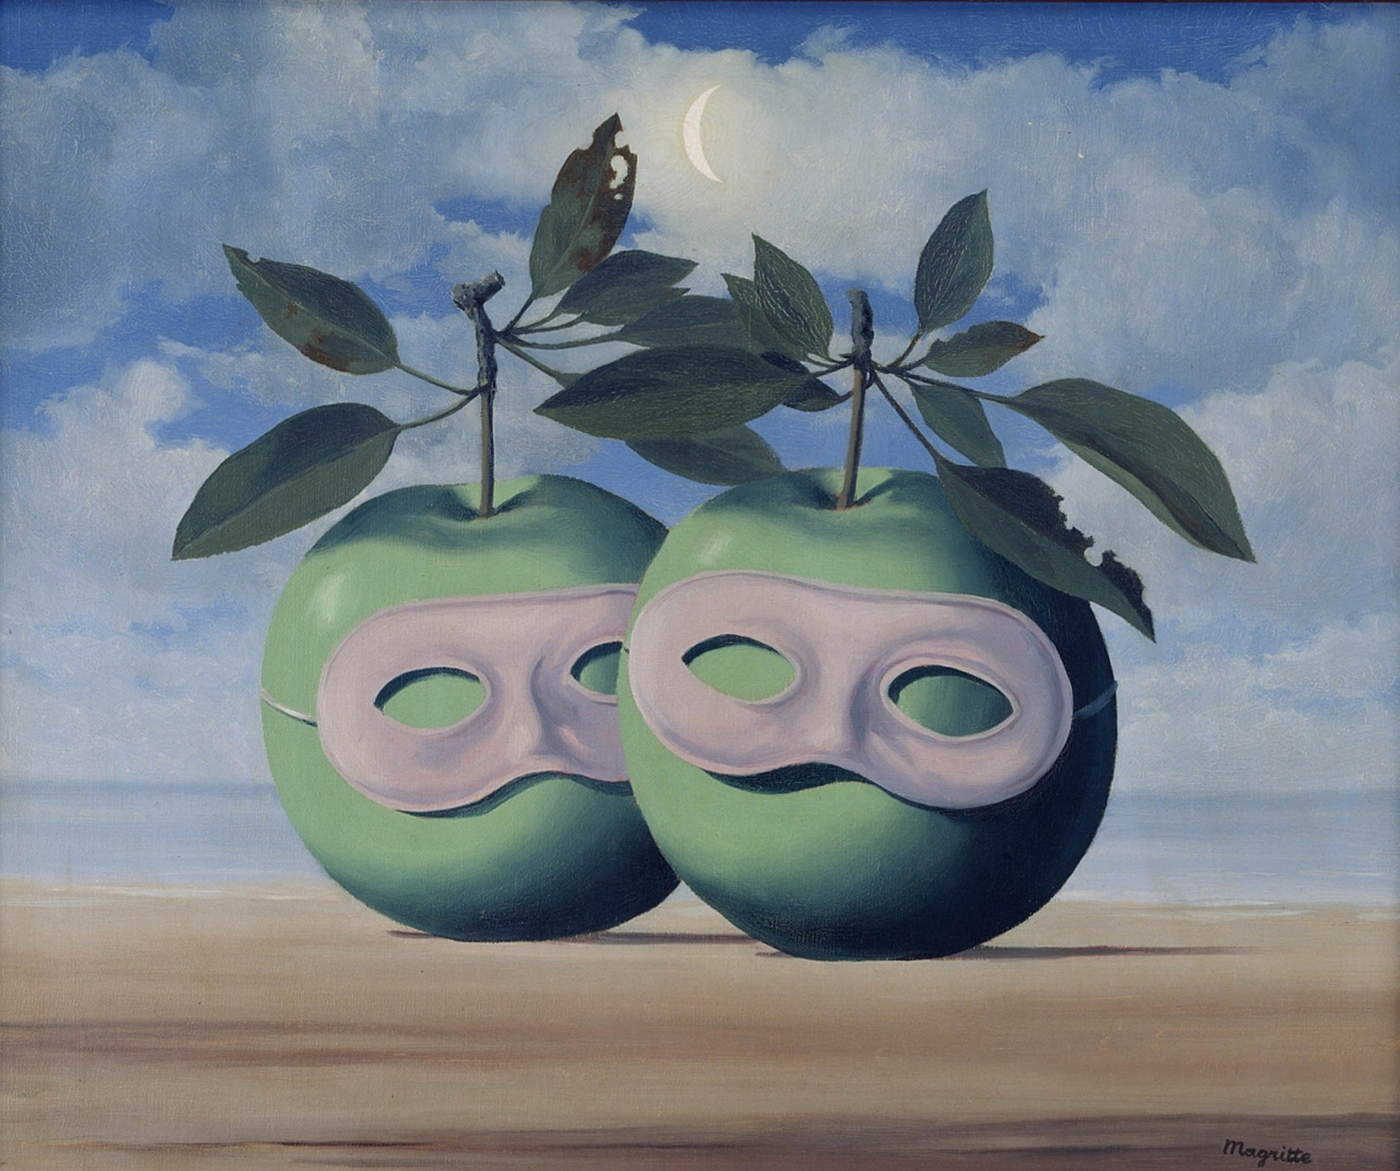 What-is-your-curiosity-profile-Rene-Magritte-le-pretre-marie-insight-coaching-art